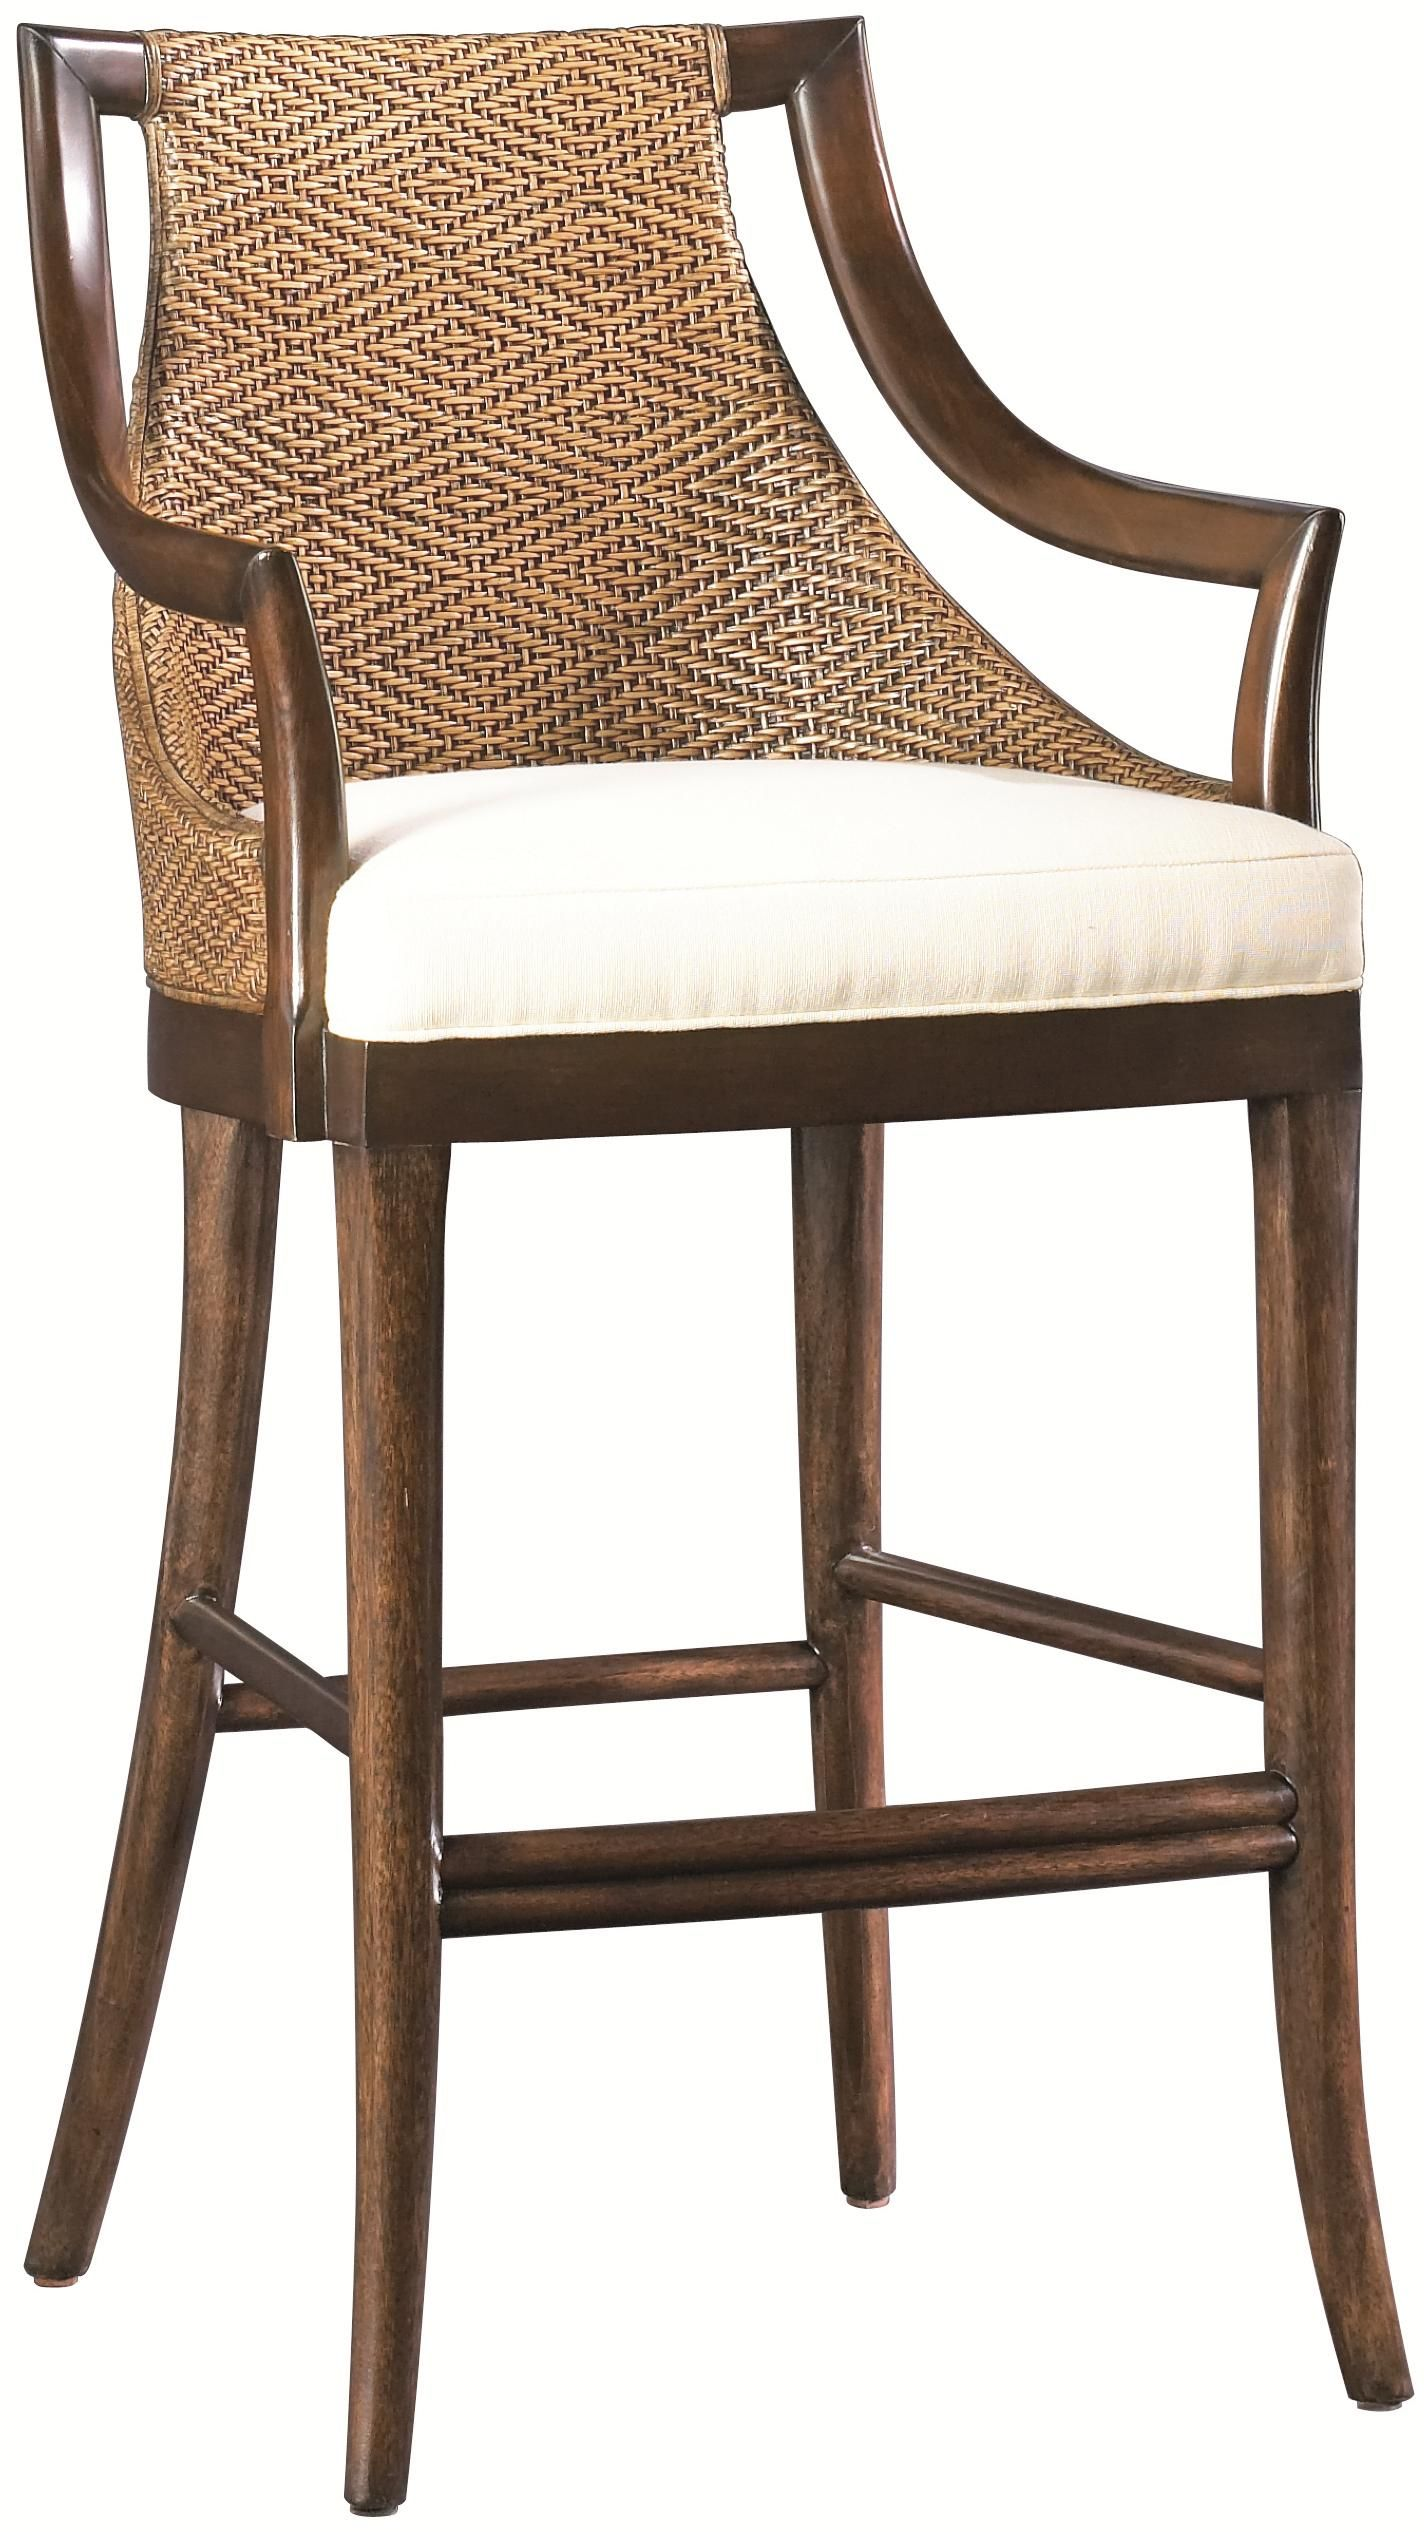 Paragon Counter Height Stool With Diamon Cane Weave Back Frabric Upholstered Seat At Baer S Kitchen Bar Stools Stools For Kitchen Island Furniture